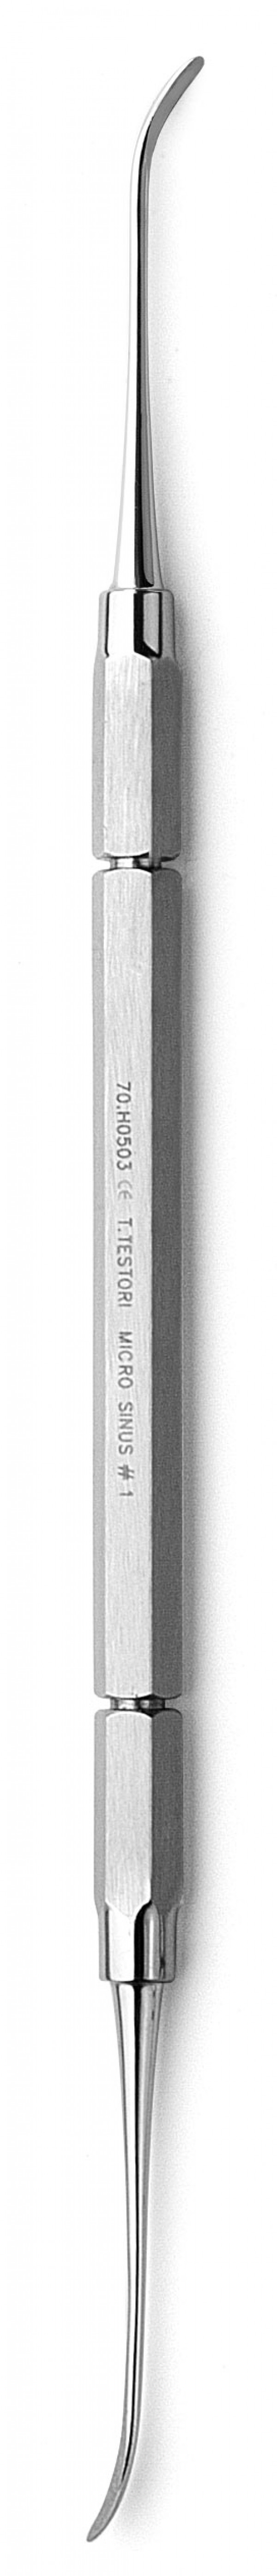 Sinus micro-curette for initial separation in the cranial site